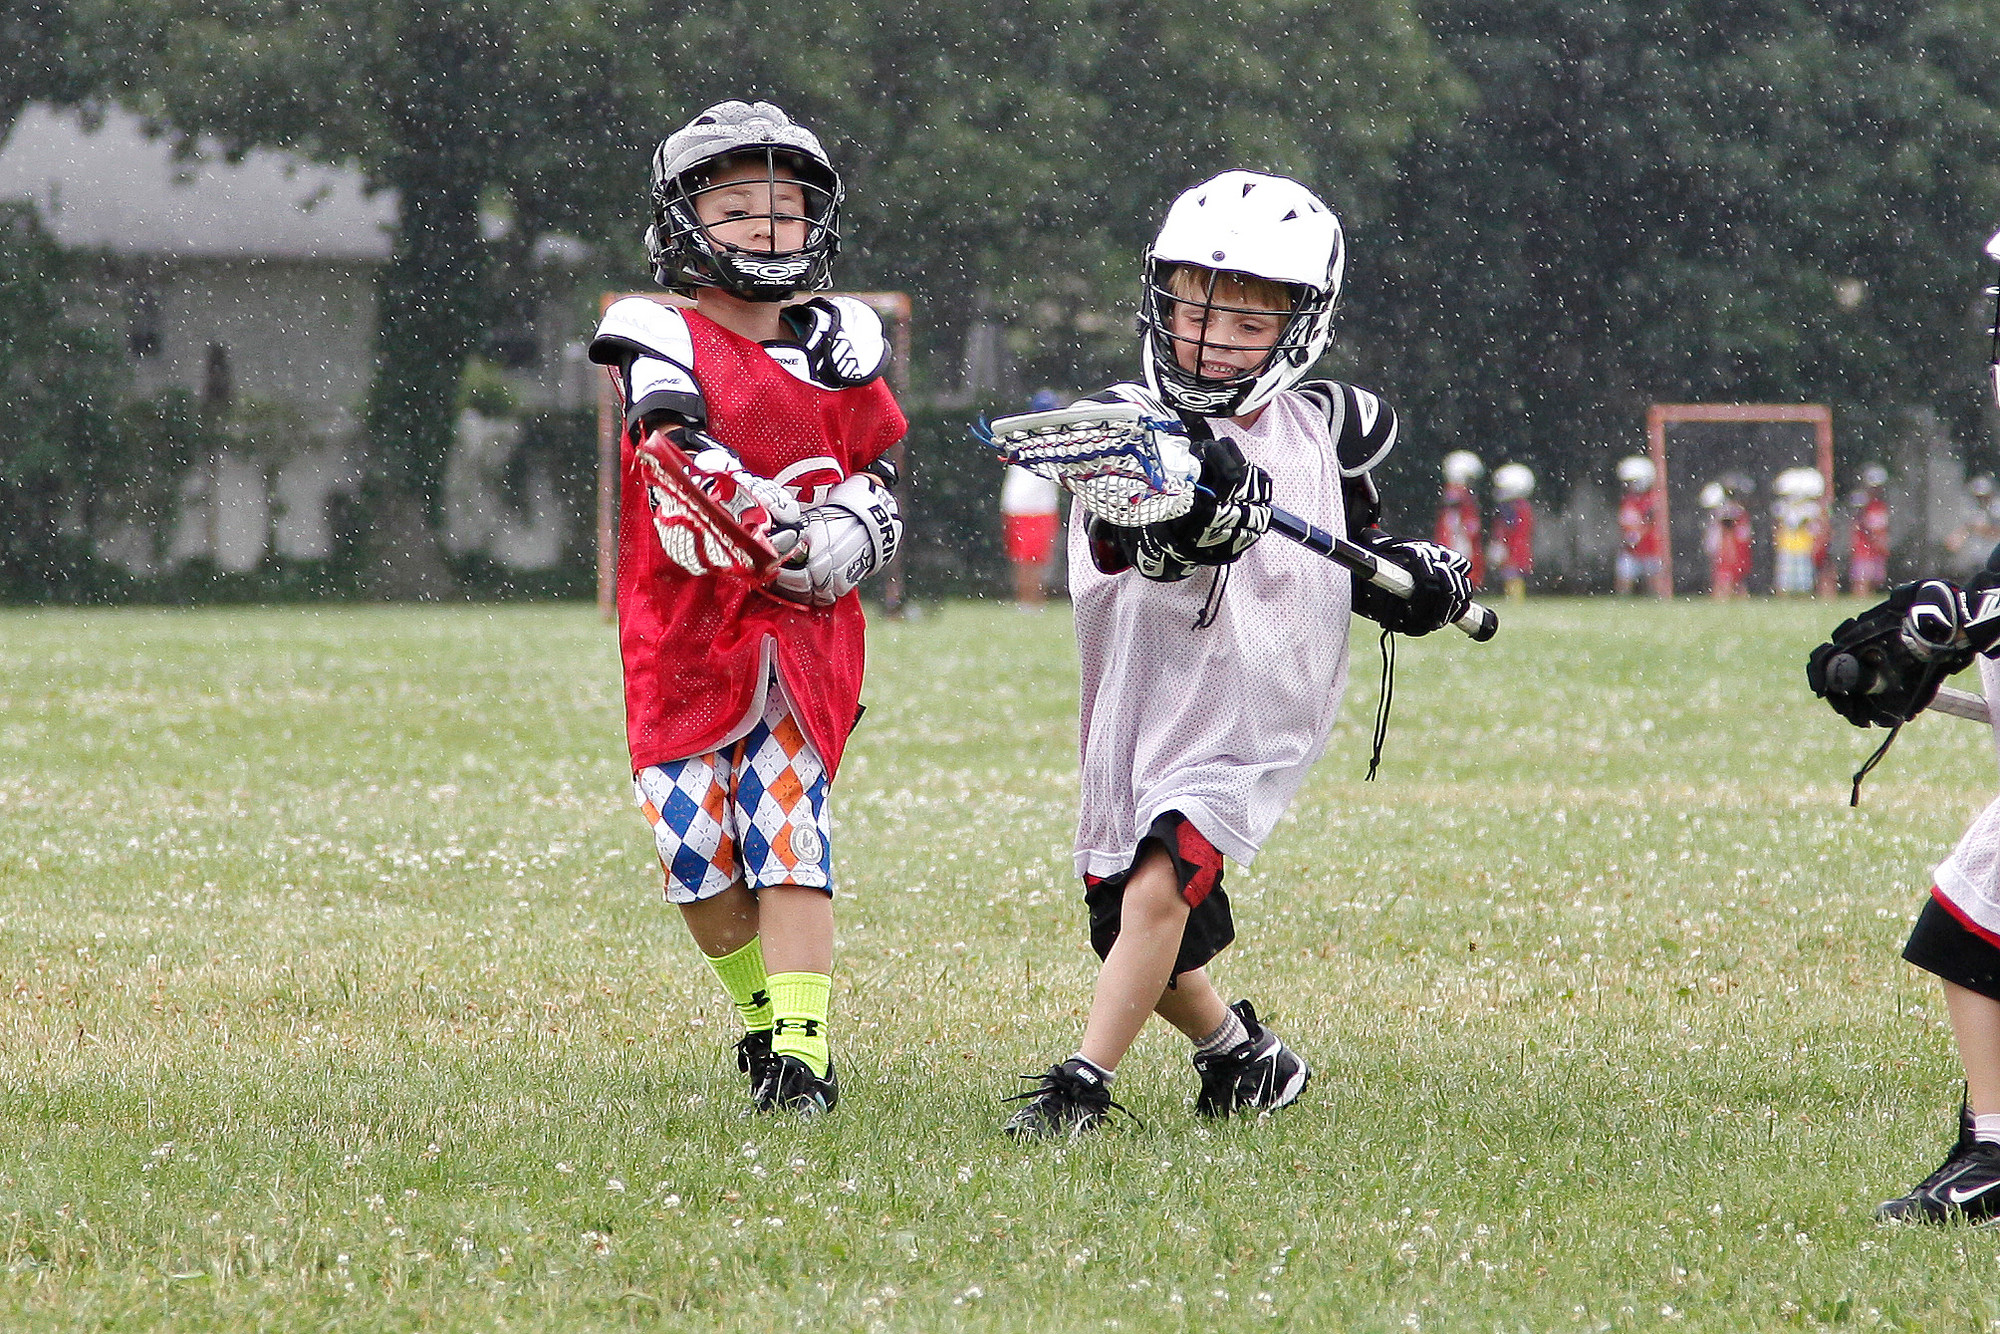 Ryan Zsamboky, left, and Owen Stalhilik honed their skills in the rain at the Town of Hempstead Lacrosse Academy in East Meadow's Speno Park on July 11. The boys were in the 5- and 6-year-old age group, the youngest the clinic offers.